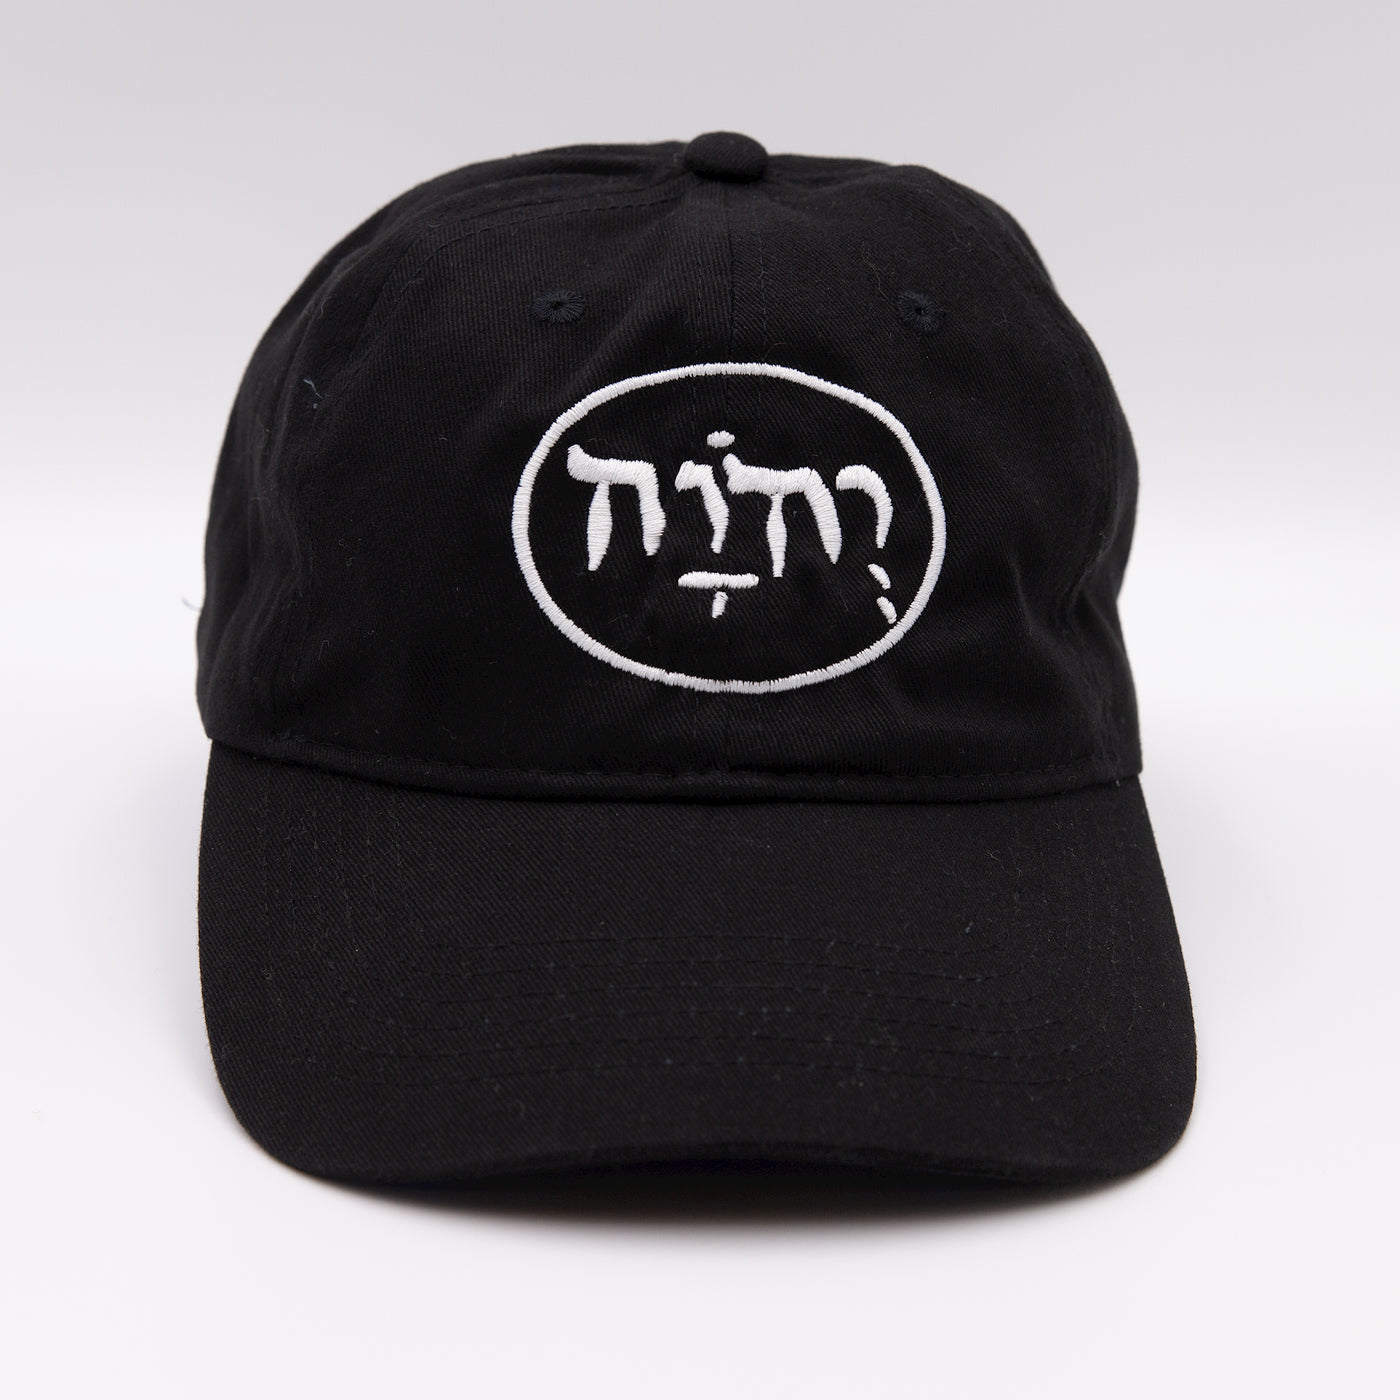 'Name of God' Hat - Black